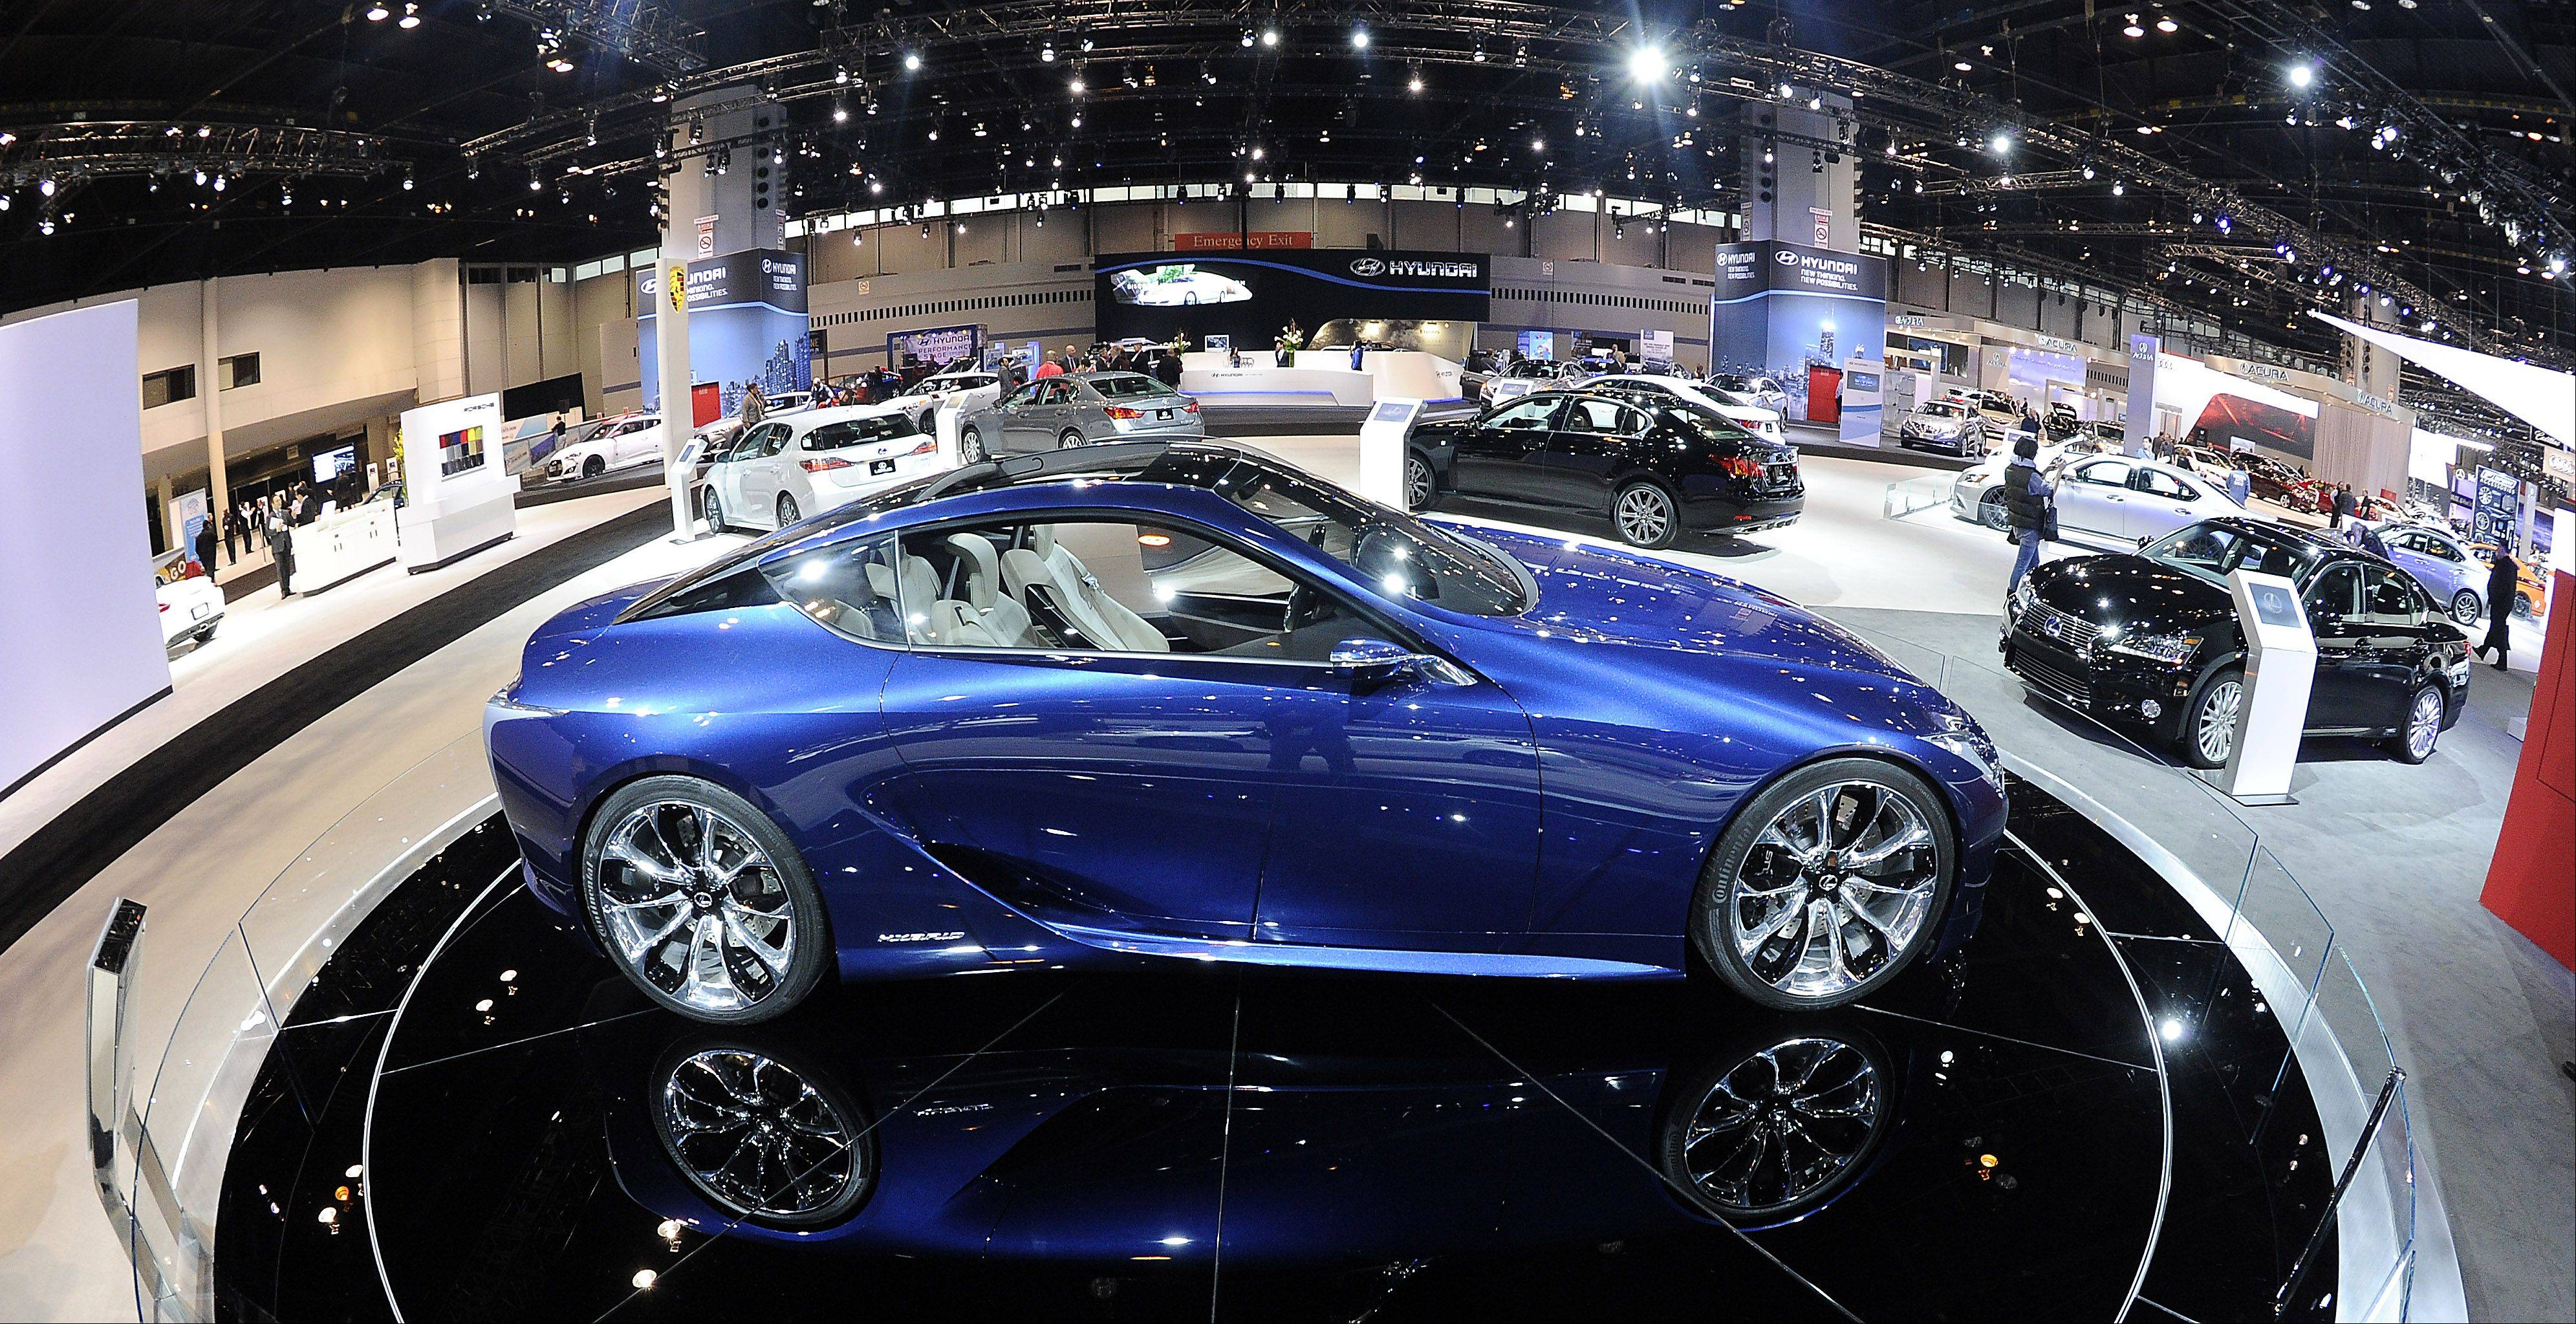 The Lexus LF-LC Hybrid Sport Coupe Concept car.